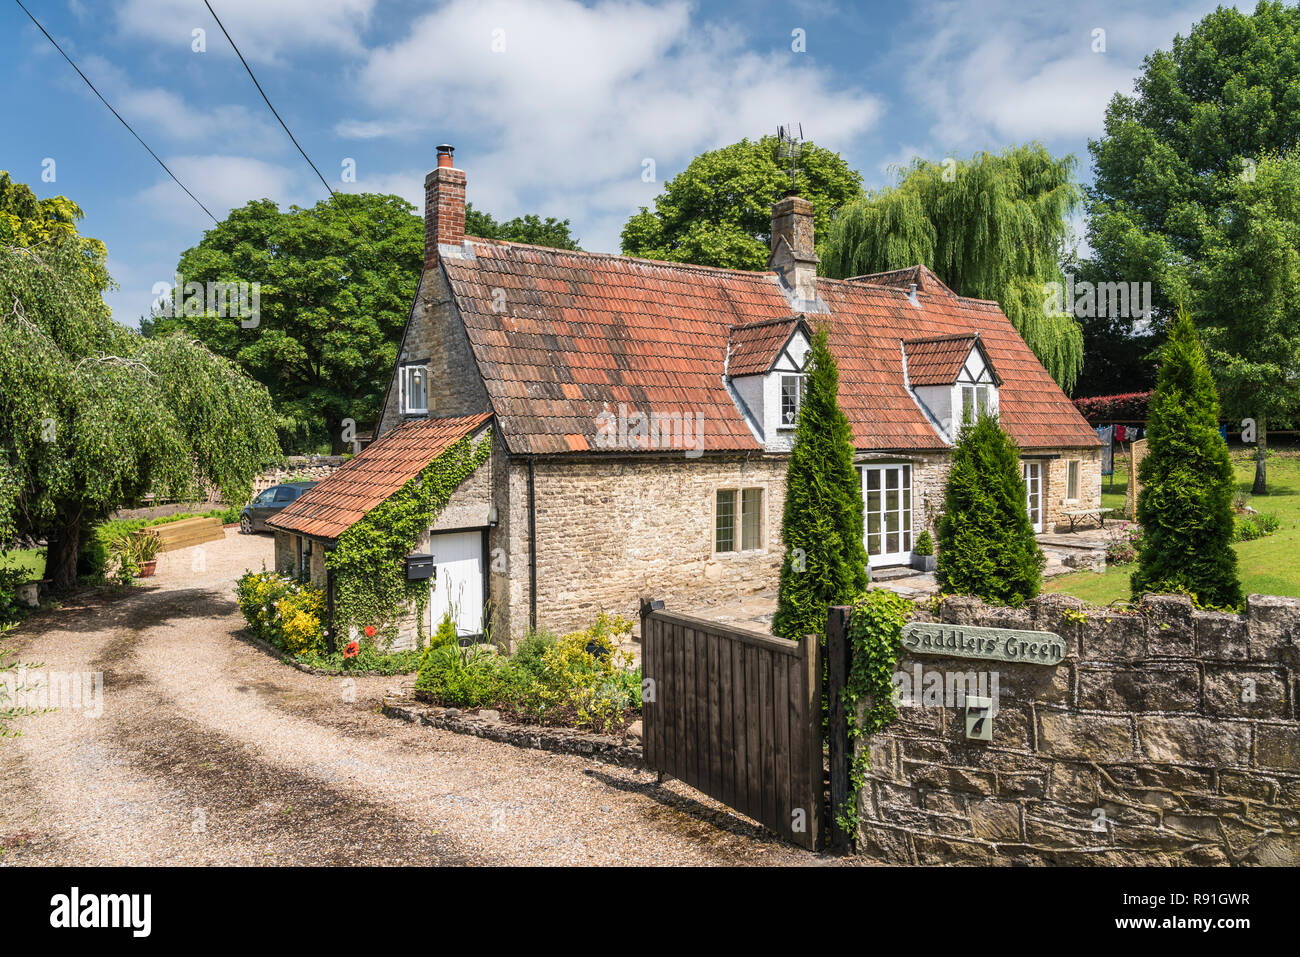 A cottage in the countryside near Corsham, Wiltshire, England. Stock Photo